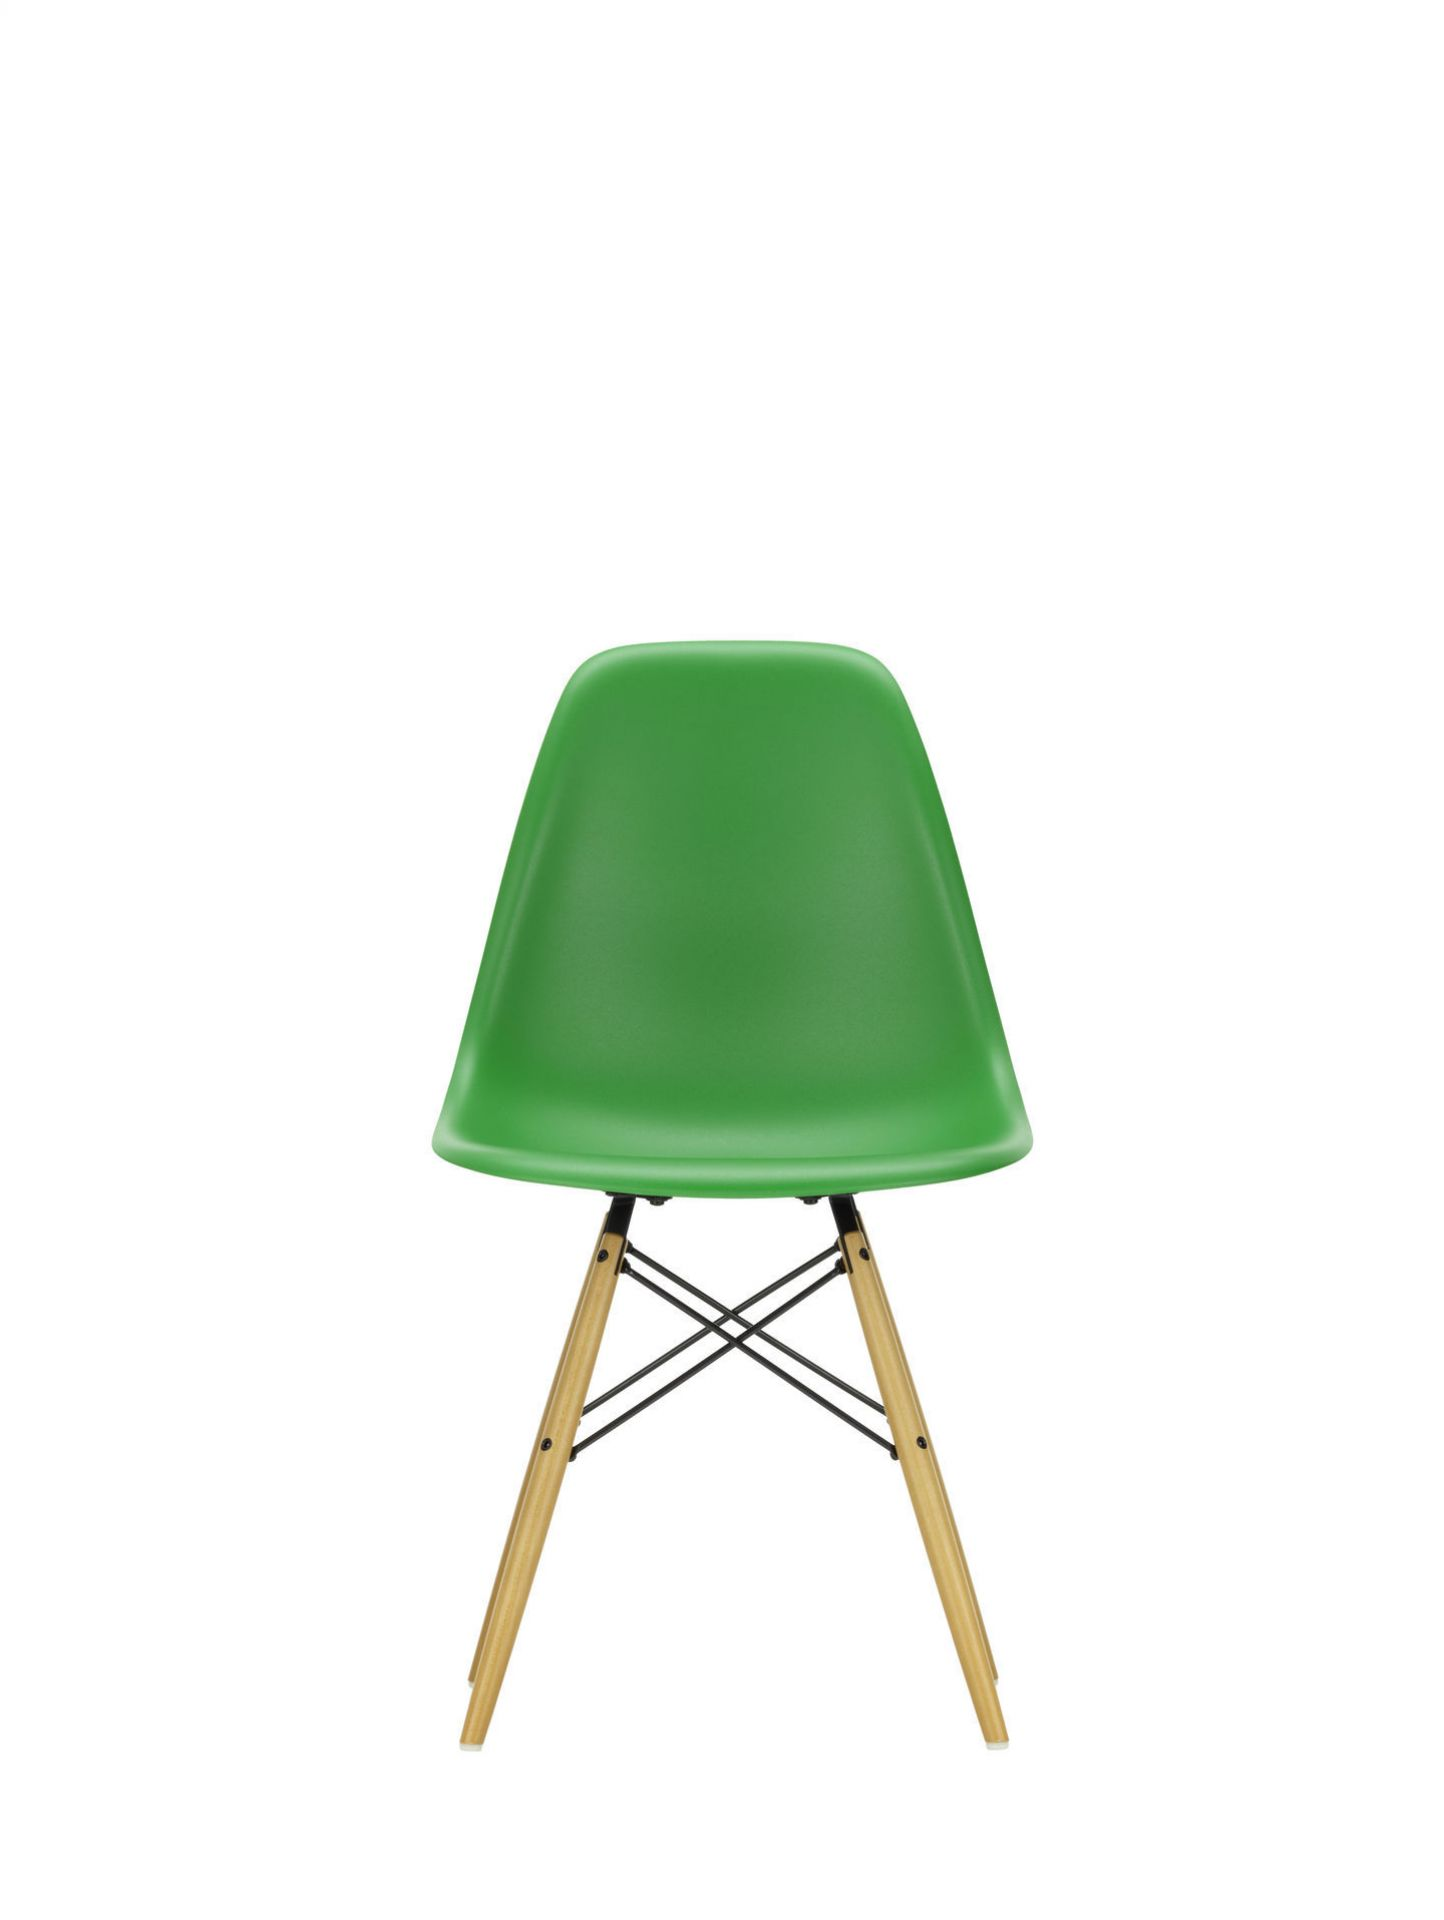 Eames Plastic Side Chair DSW Chair Vitra Maple yellowish - Ice grey